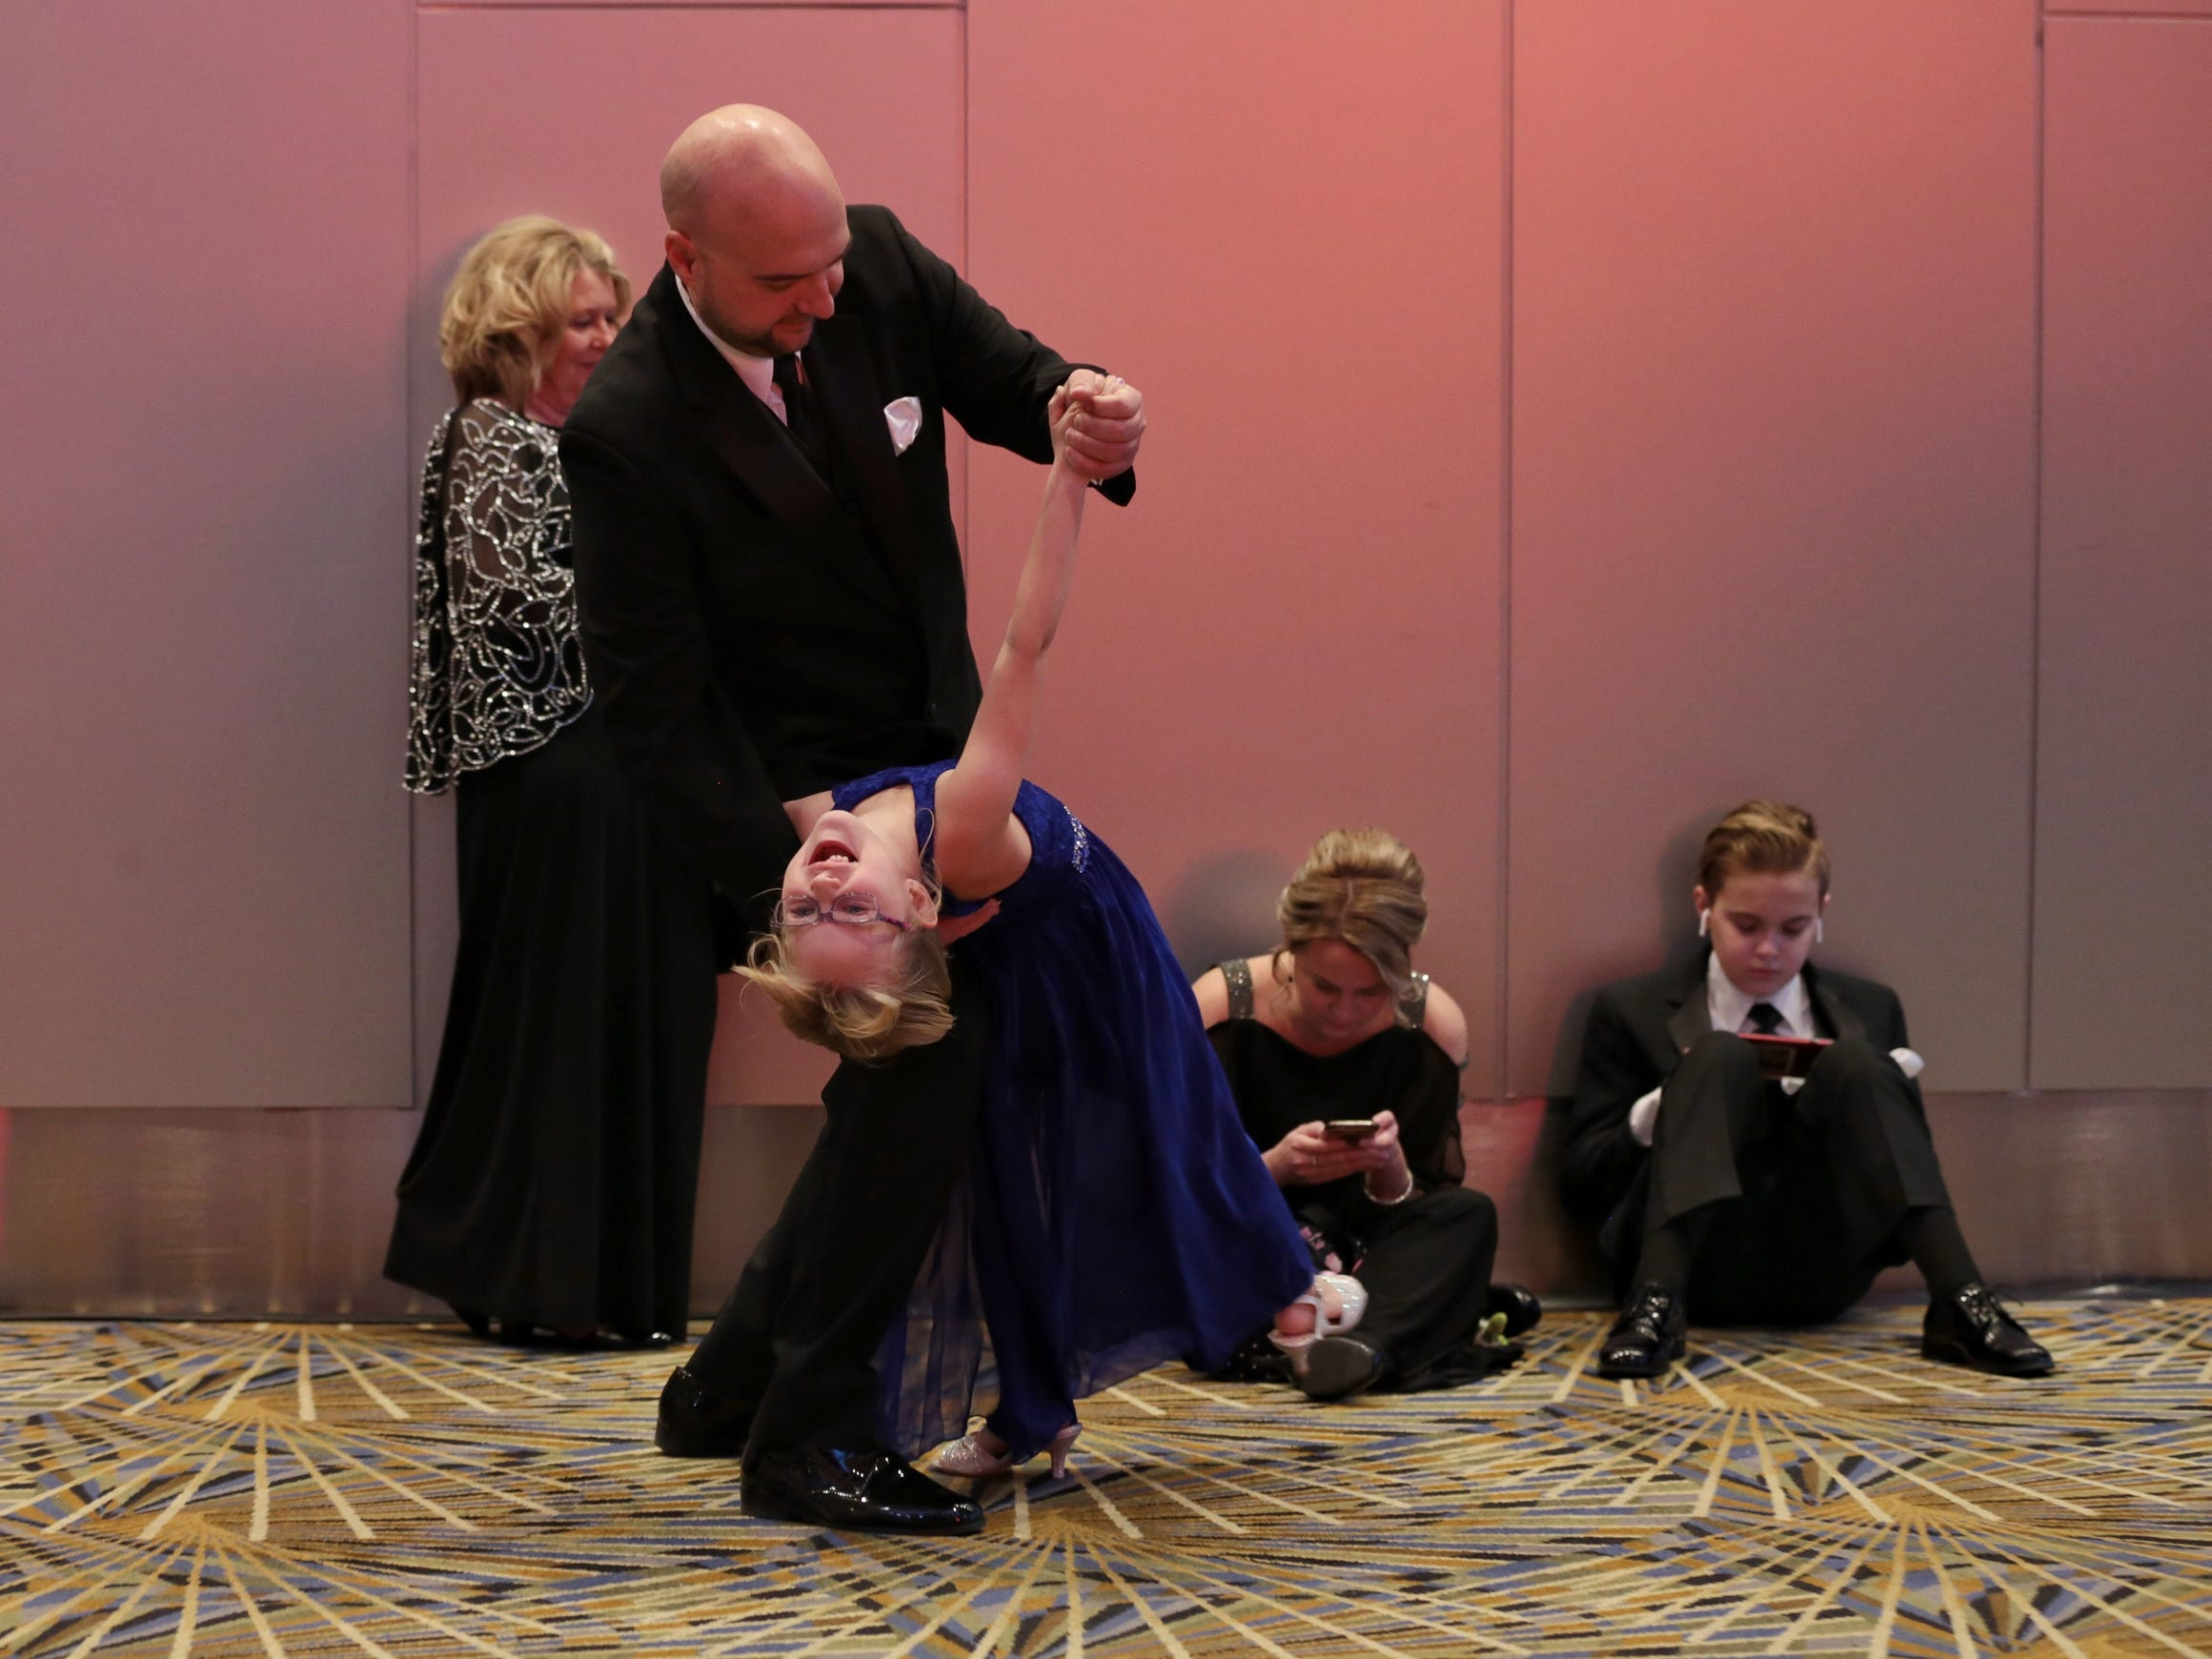 Bill Laskowski of Brownstown, twirls his daughter Lily Laskowski while waiting for the ribbon cutting during the 2019 North American International Auto Show Charity Preview at Cobo Center in Detroit on Friday, January 18, 2019.